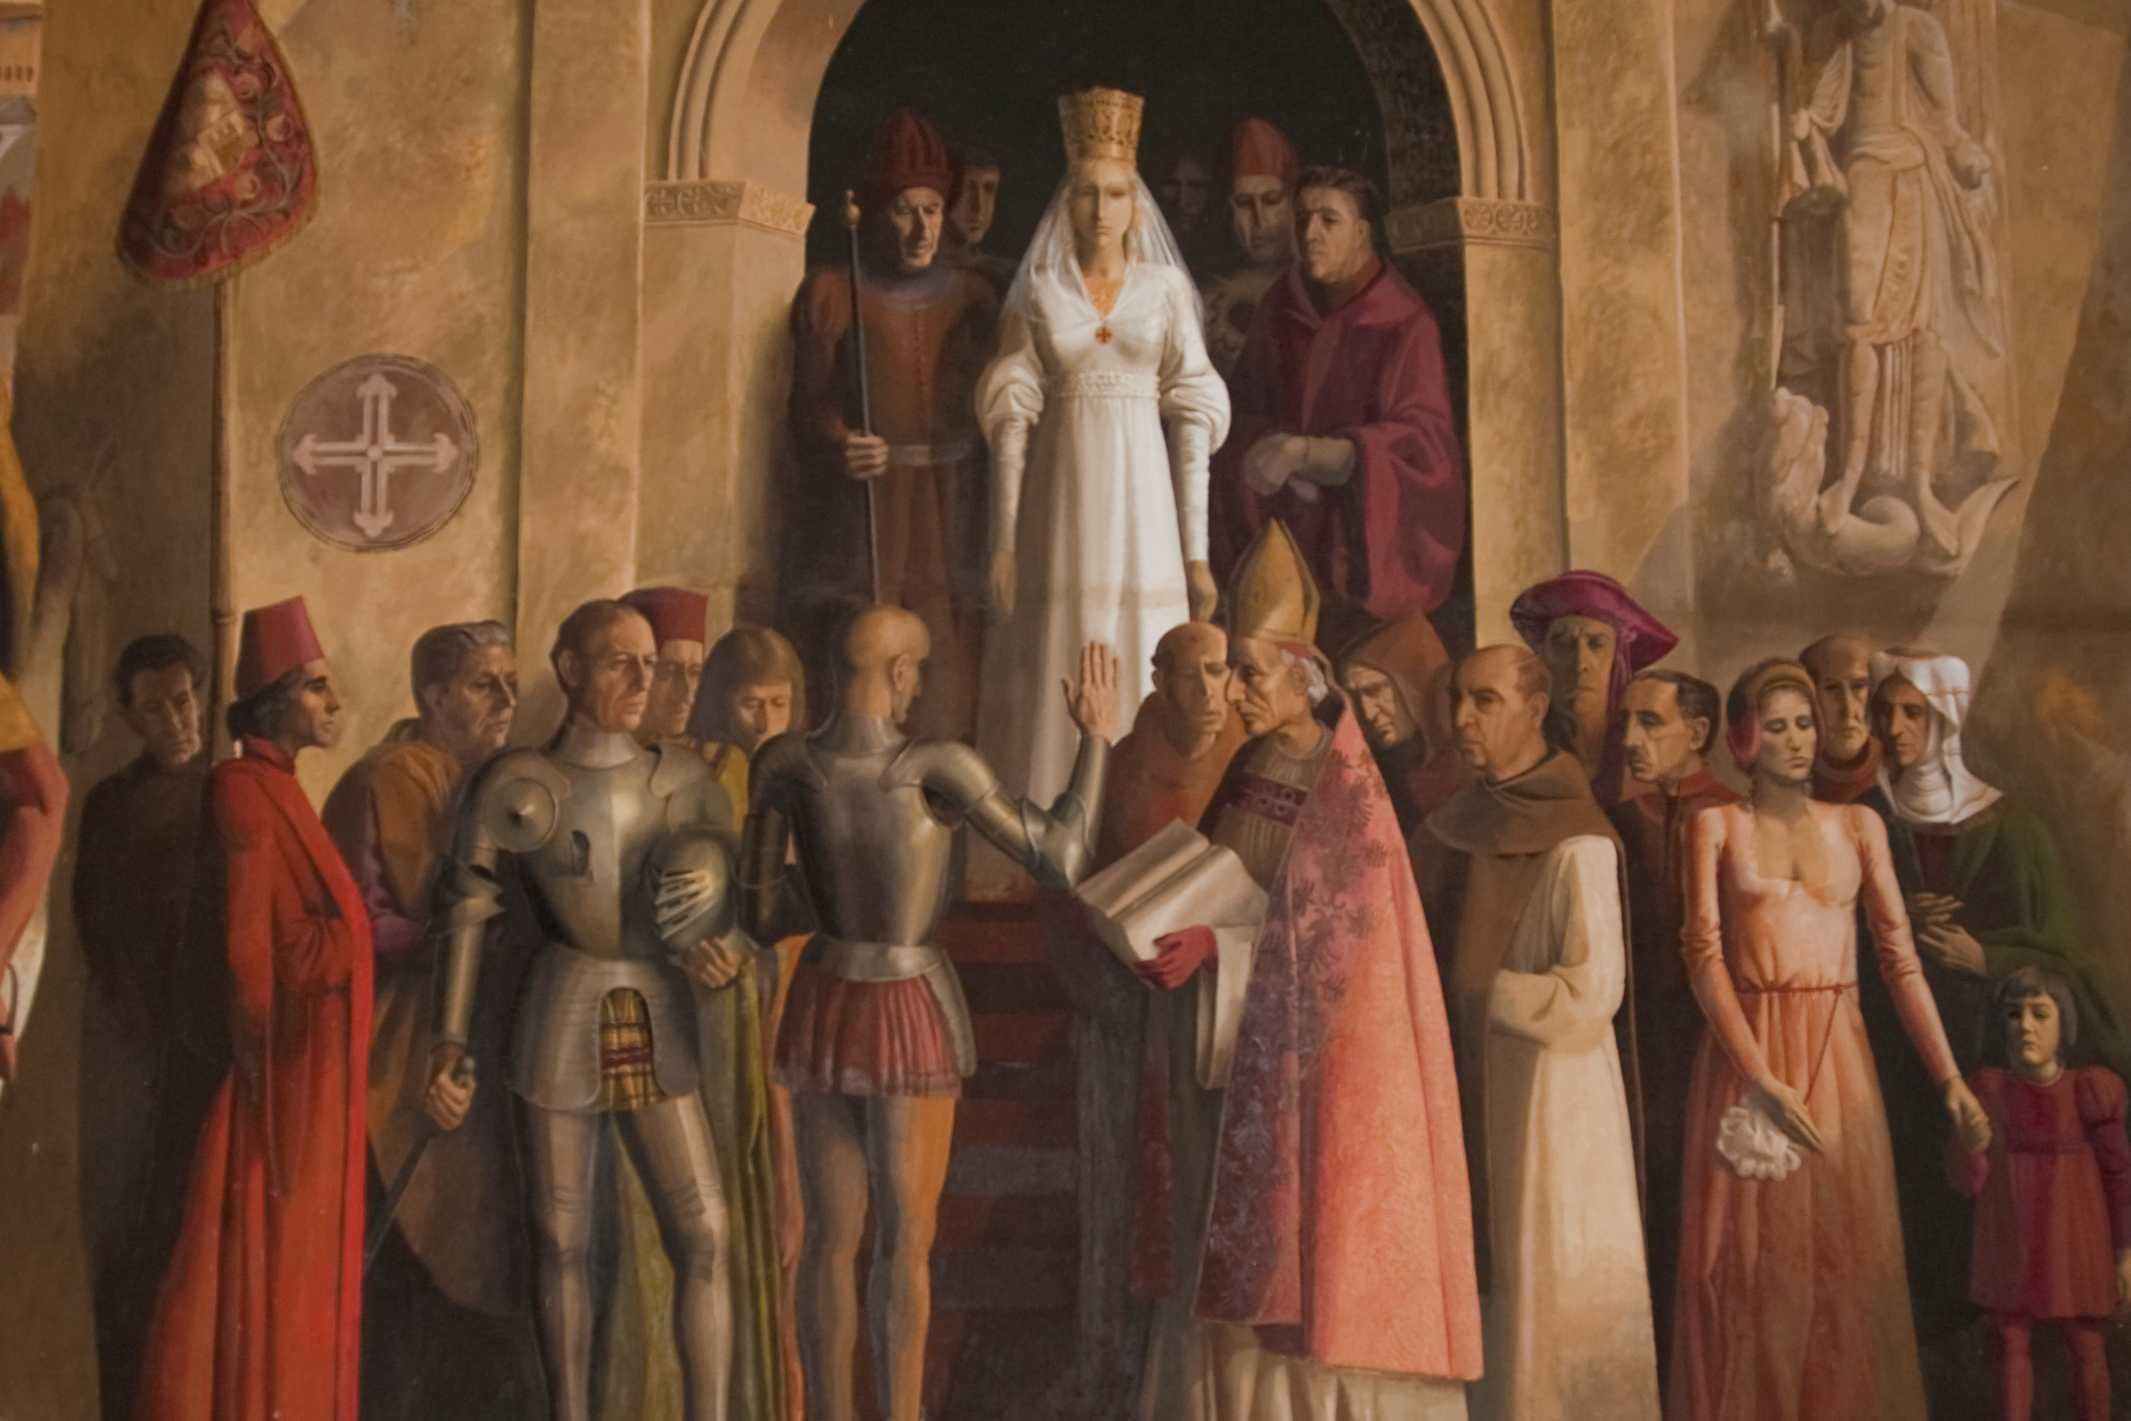 Contemporary mural by Carlos Munos de Pablos depicting proclamation of Isabella as queen of Castile and Leon